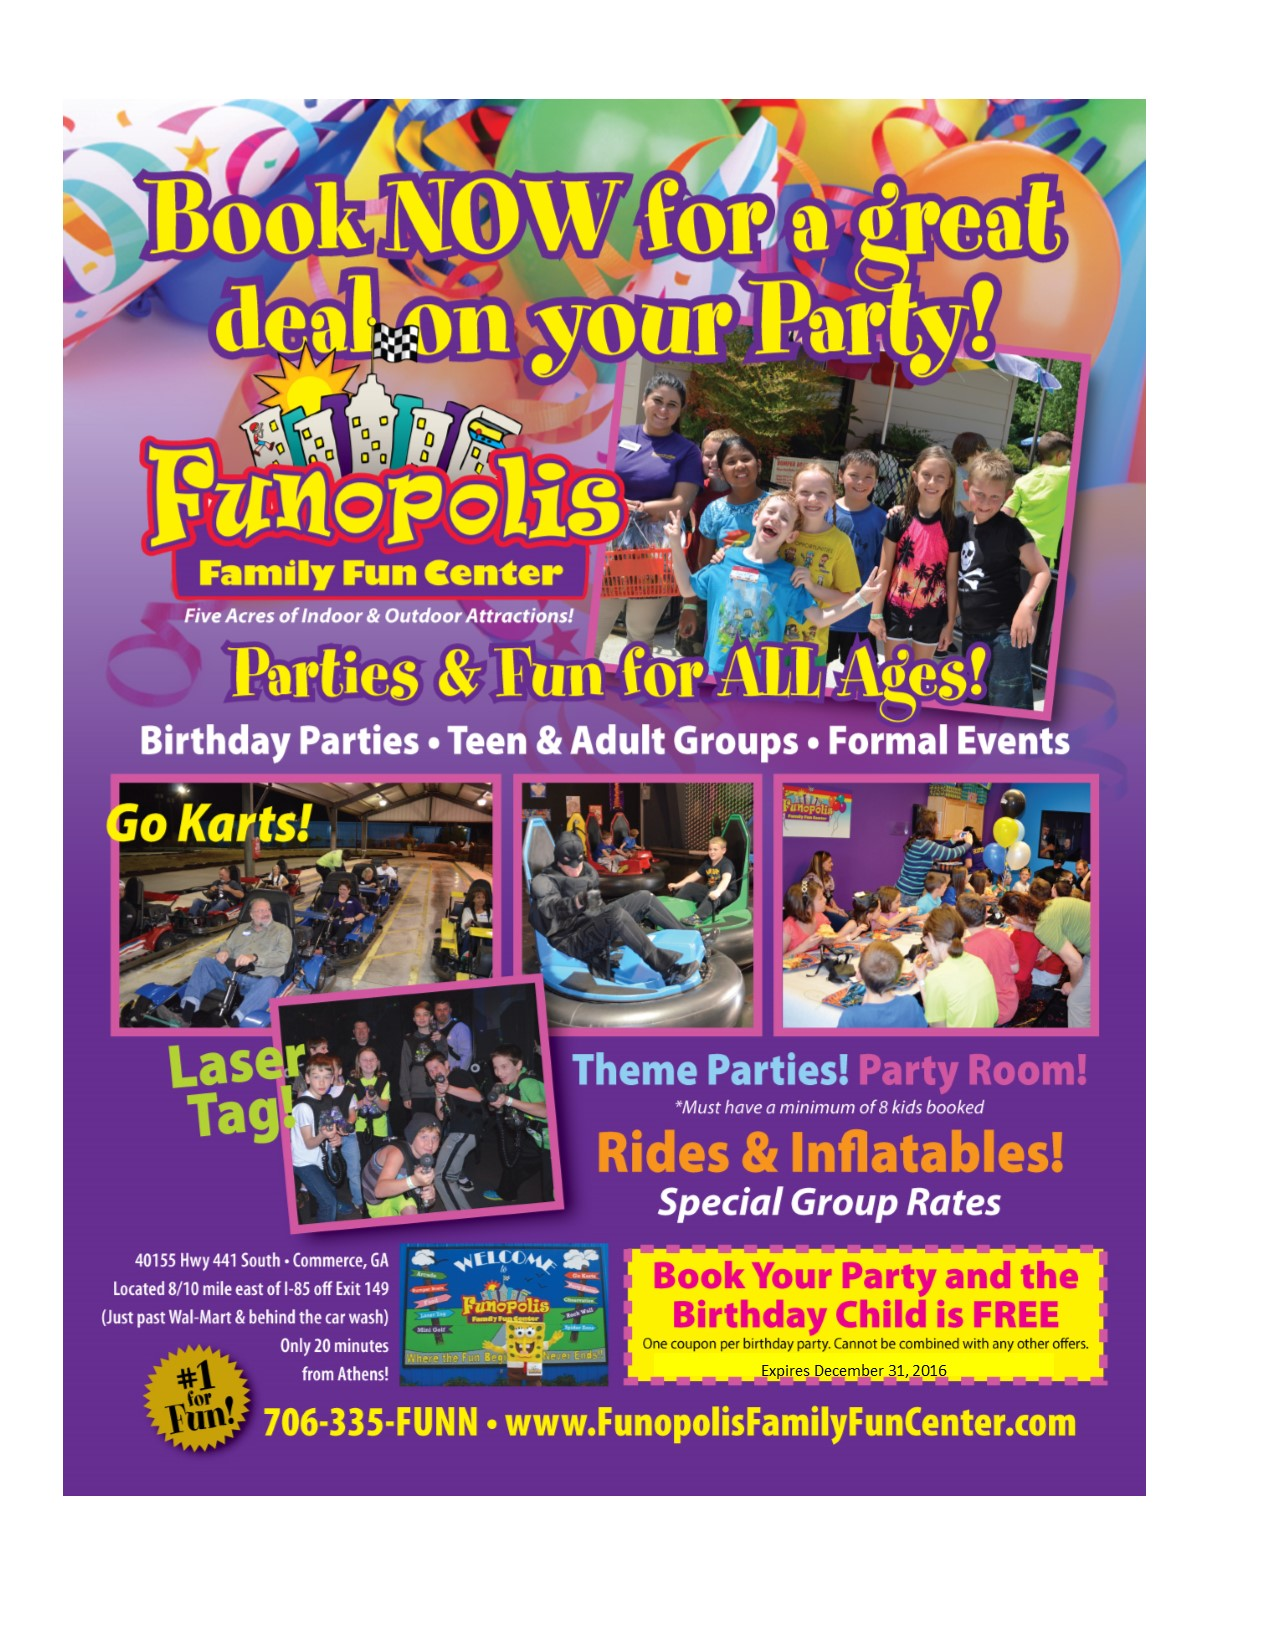 Funopolis coupons